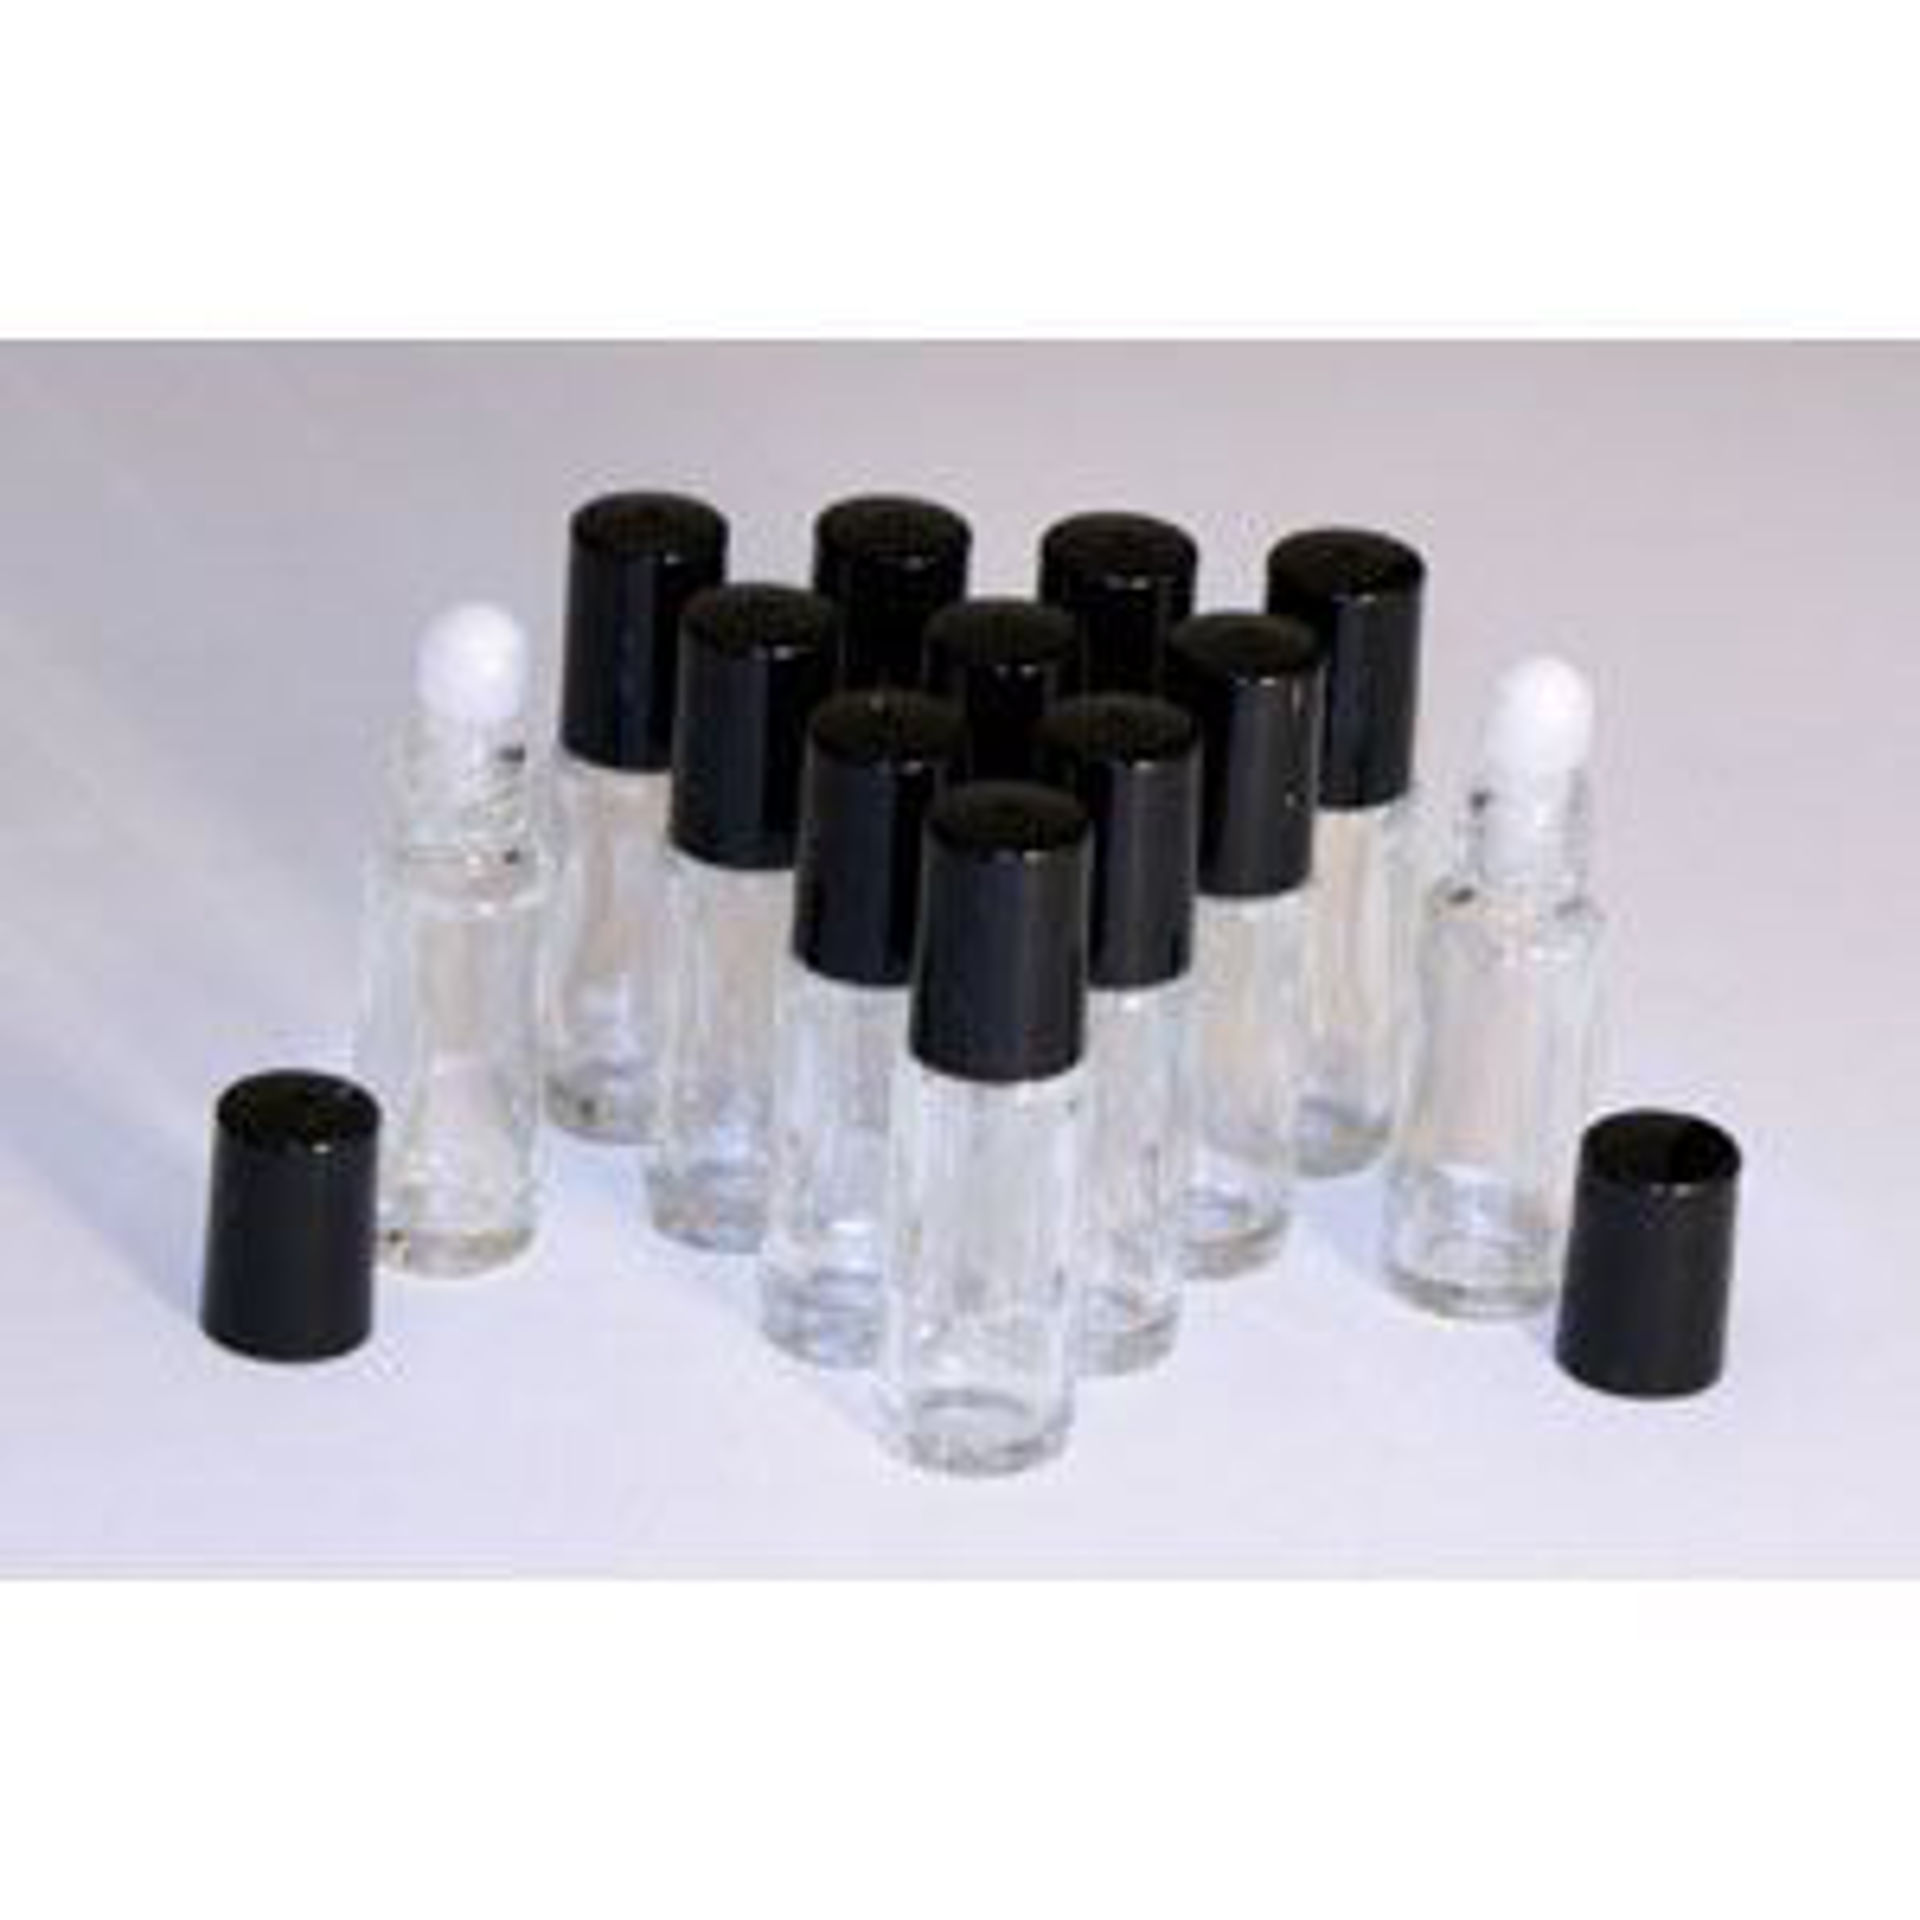 Picture of 1 Dram Glass ROLL-ON Bottles - Set Of 12